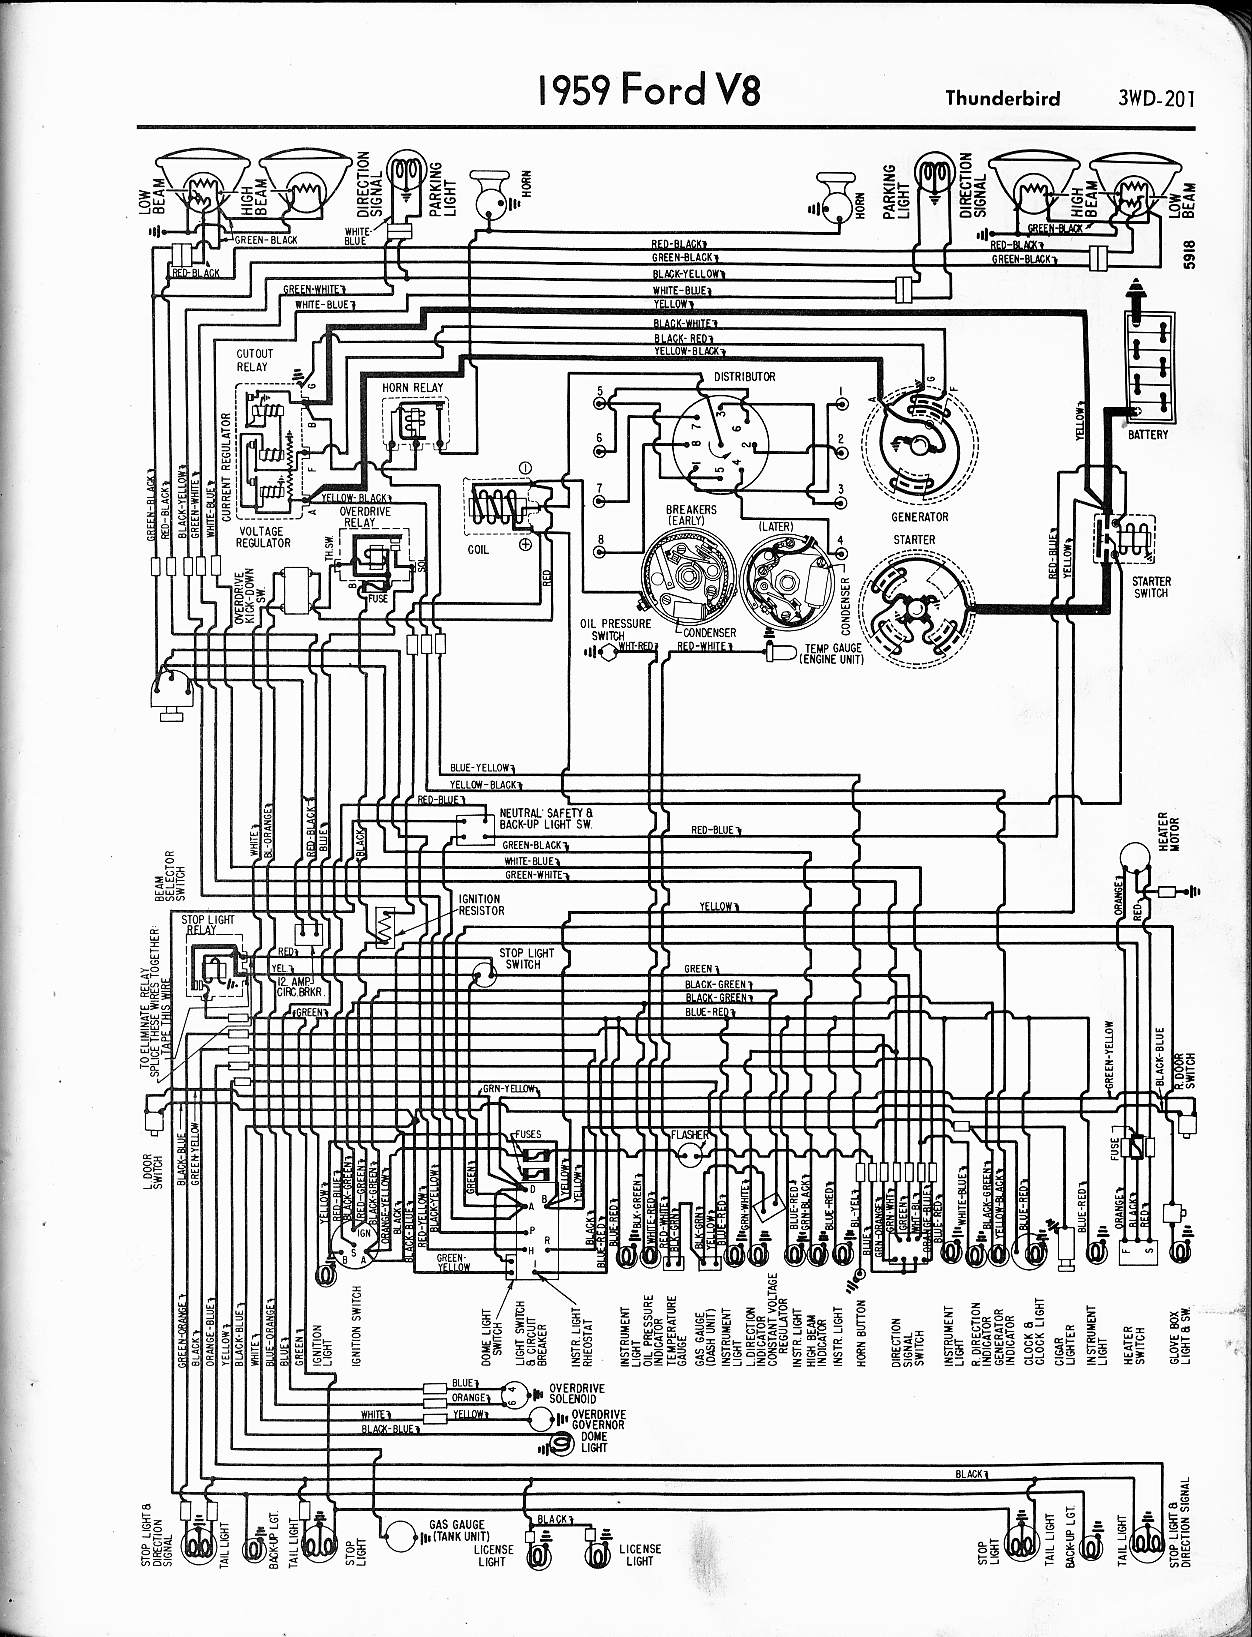 57 65 ford wiring diagrams rh oldcarmanualproject com Ford Taurus Fuse Box Diagram Ford F-150 Fuse Box Diagram